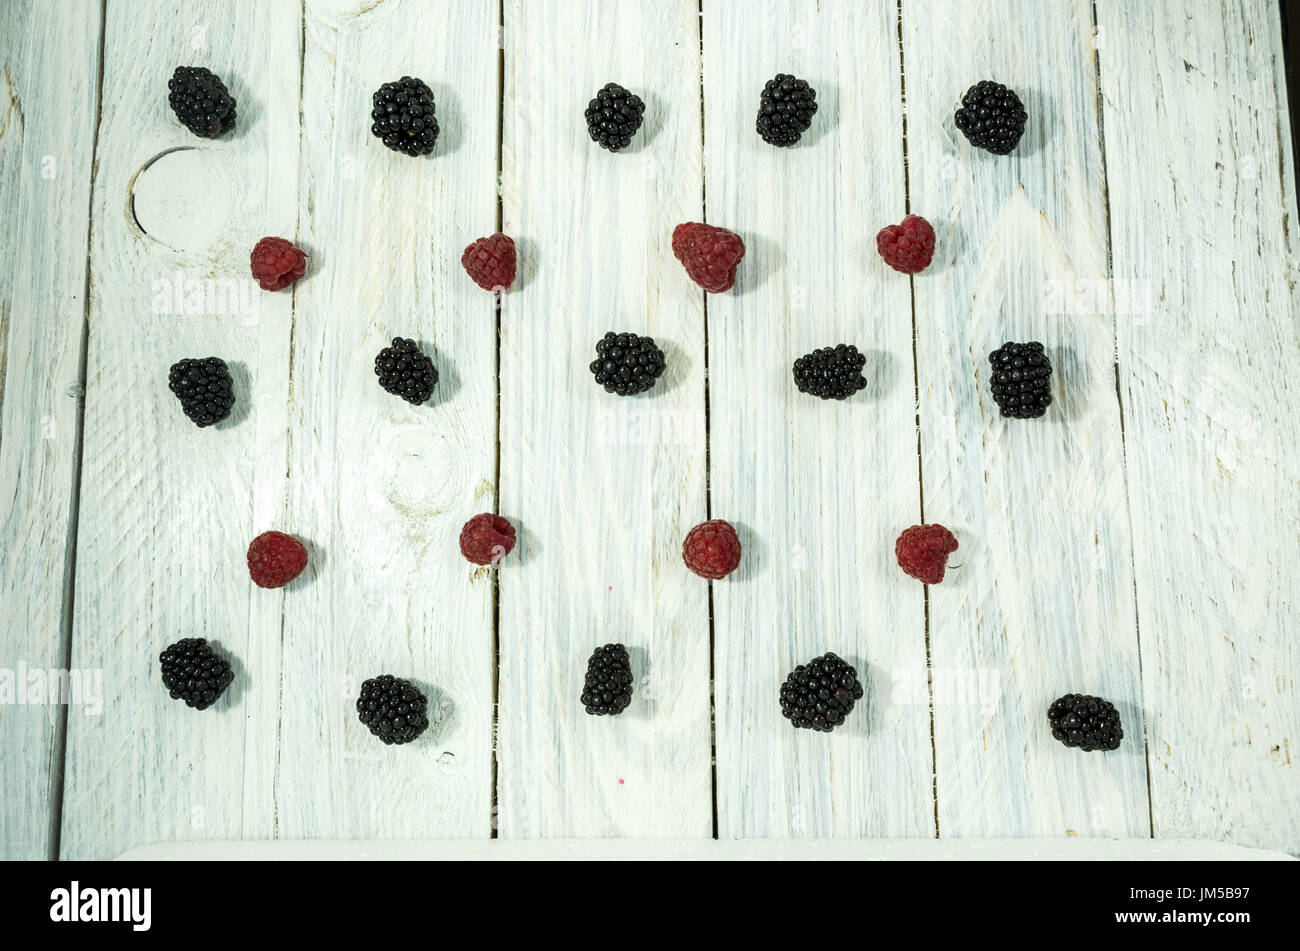 Blackberry and raspberries. are arranged in a row. Flat lay. Berries on a white background. - Stock Image